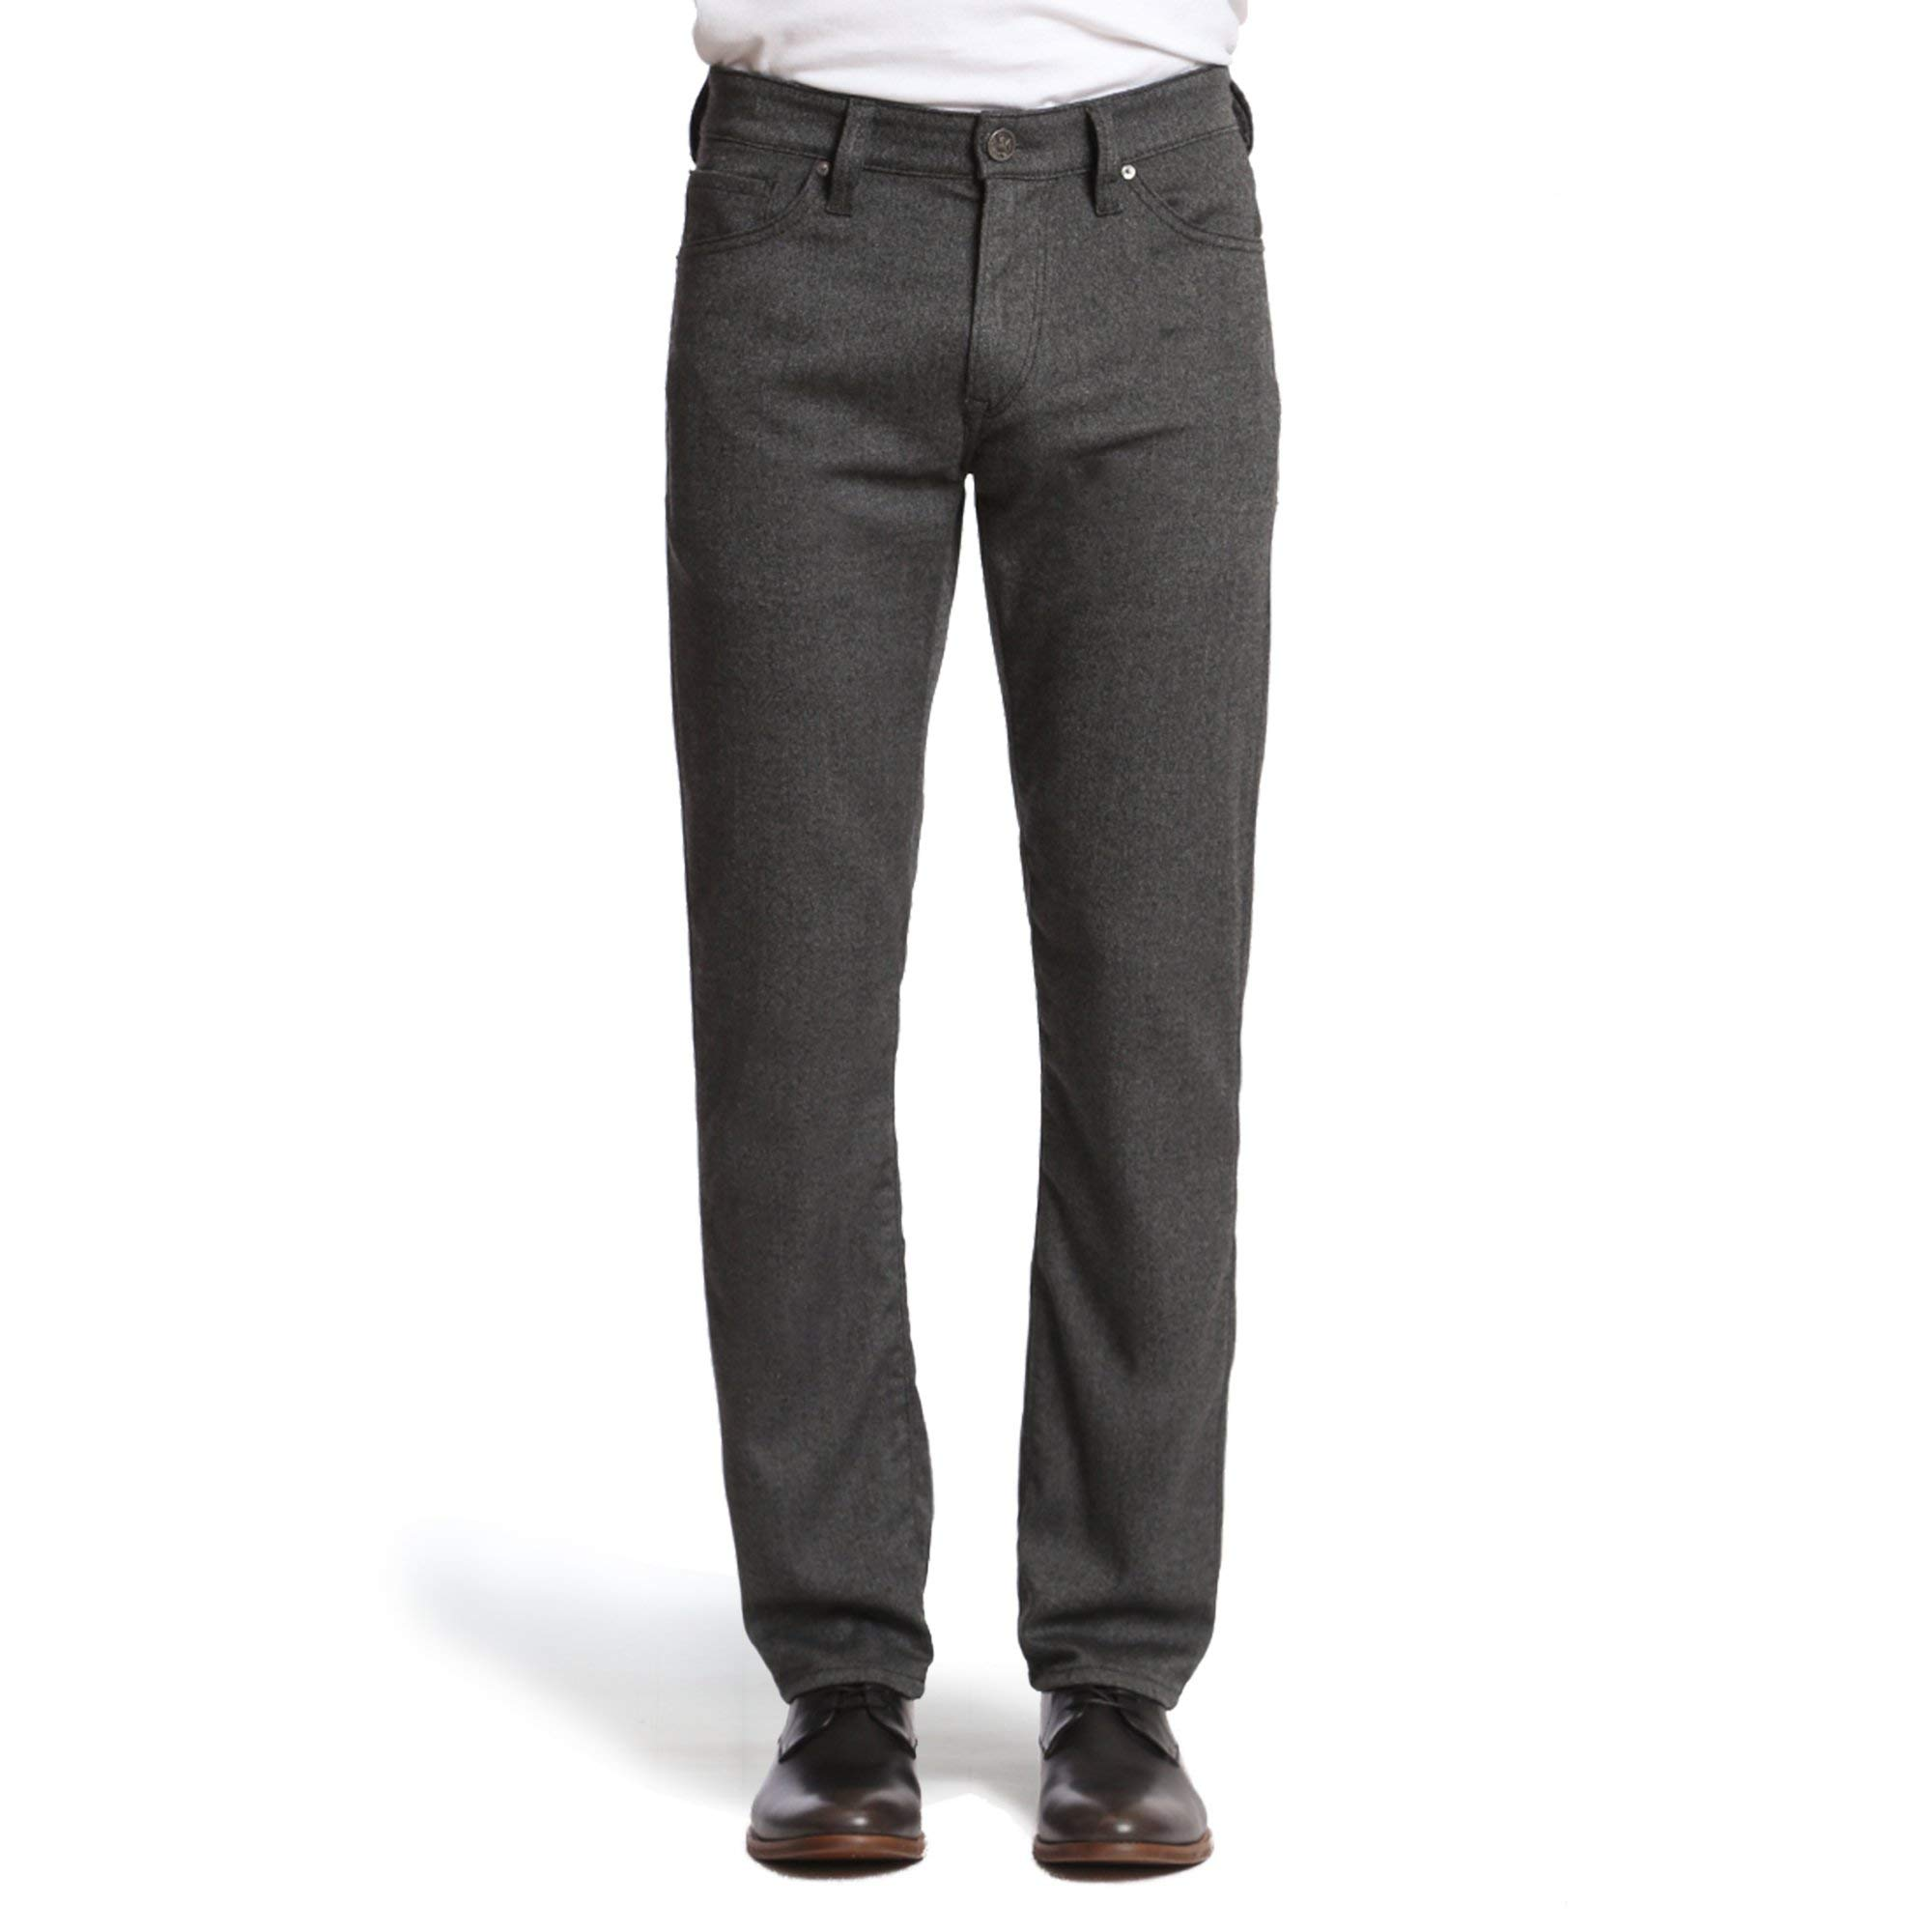 34 Heritage Men's Charisma Relaxed Classic Pants, Grey Feather Tweed 34 x 34 by 34 Heritage (Image #1)